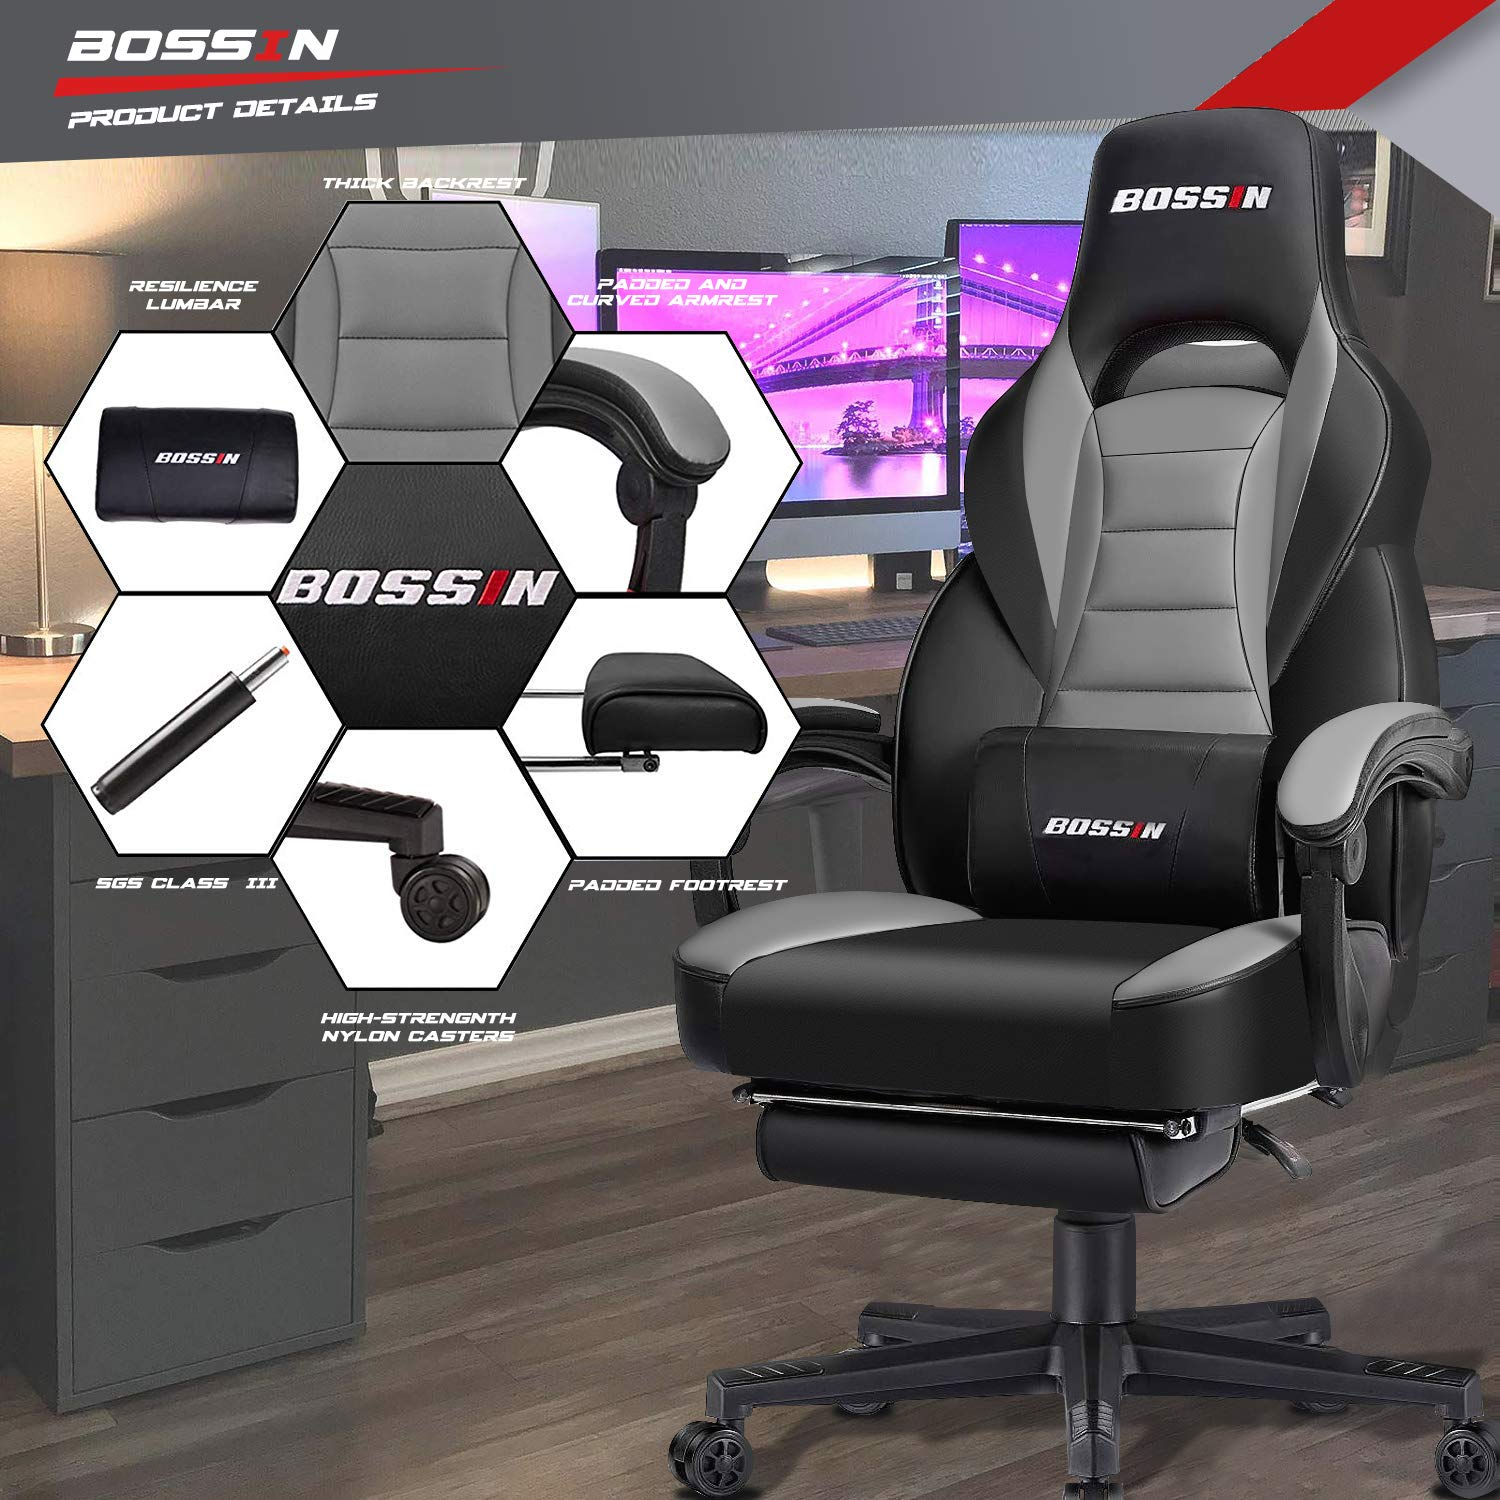 BOSSIN Gaming Chair Office Computer Desk Chair with Footrest and Headrest Racing Game Ergonomic Design Large Size High-Back E-Sports Chair PU Leather Swivel Chair Gray